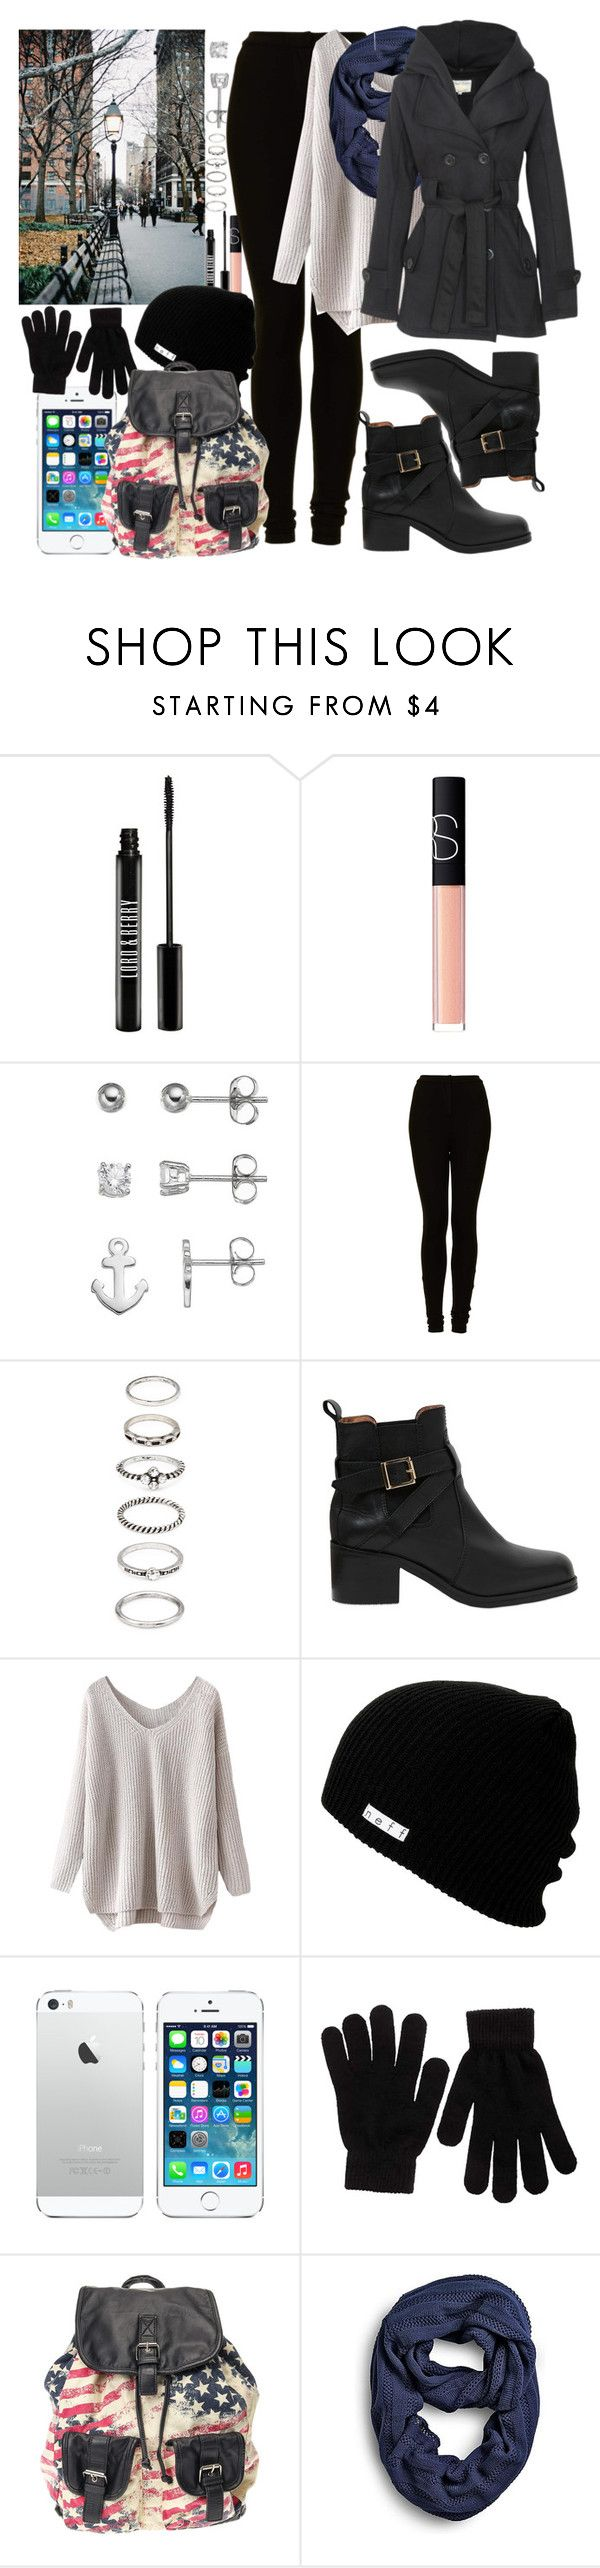 """""""Sem título #1152"""" by esther-rosa ❤ liked on Polyvore featuring Lord & Berry, NARS Cosmetics, Topshop, Forever 21, Carvela Kurt Geiger, Neff, Pieces and Sperry"""